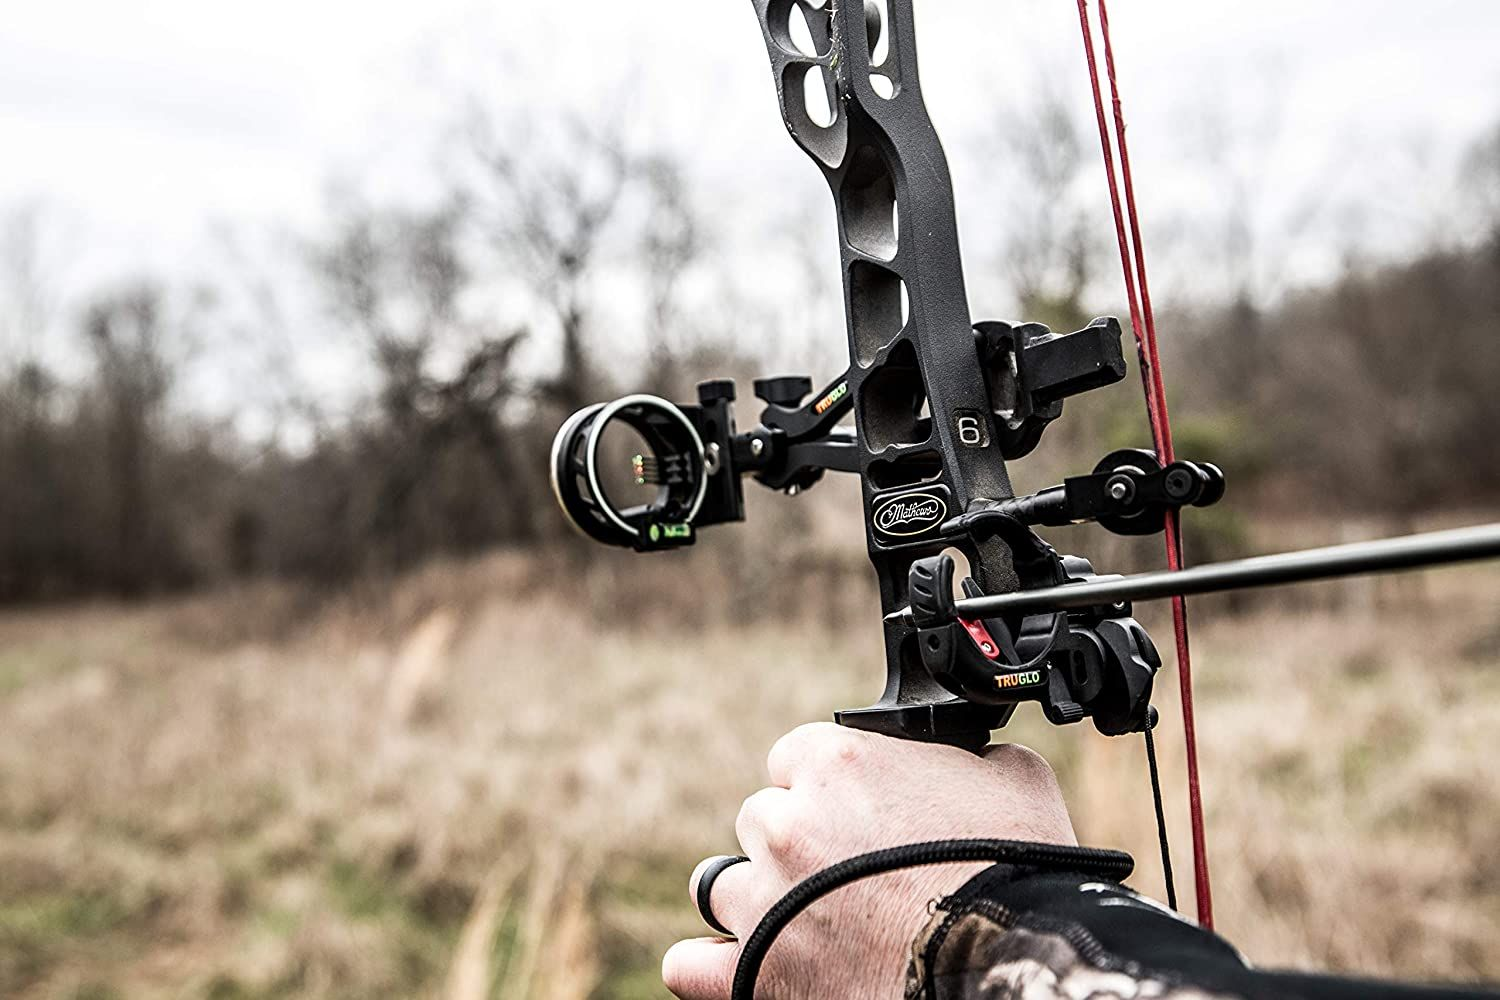 Ultra Light Compound Bow Sights TRUGLO Long Range in 2020